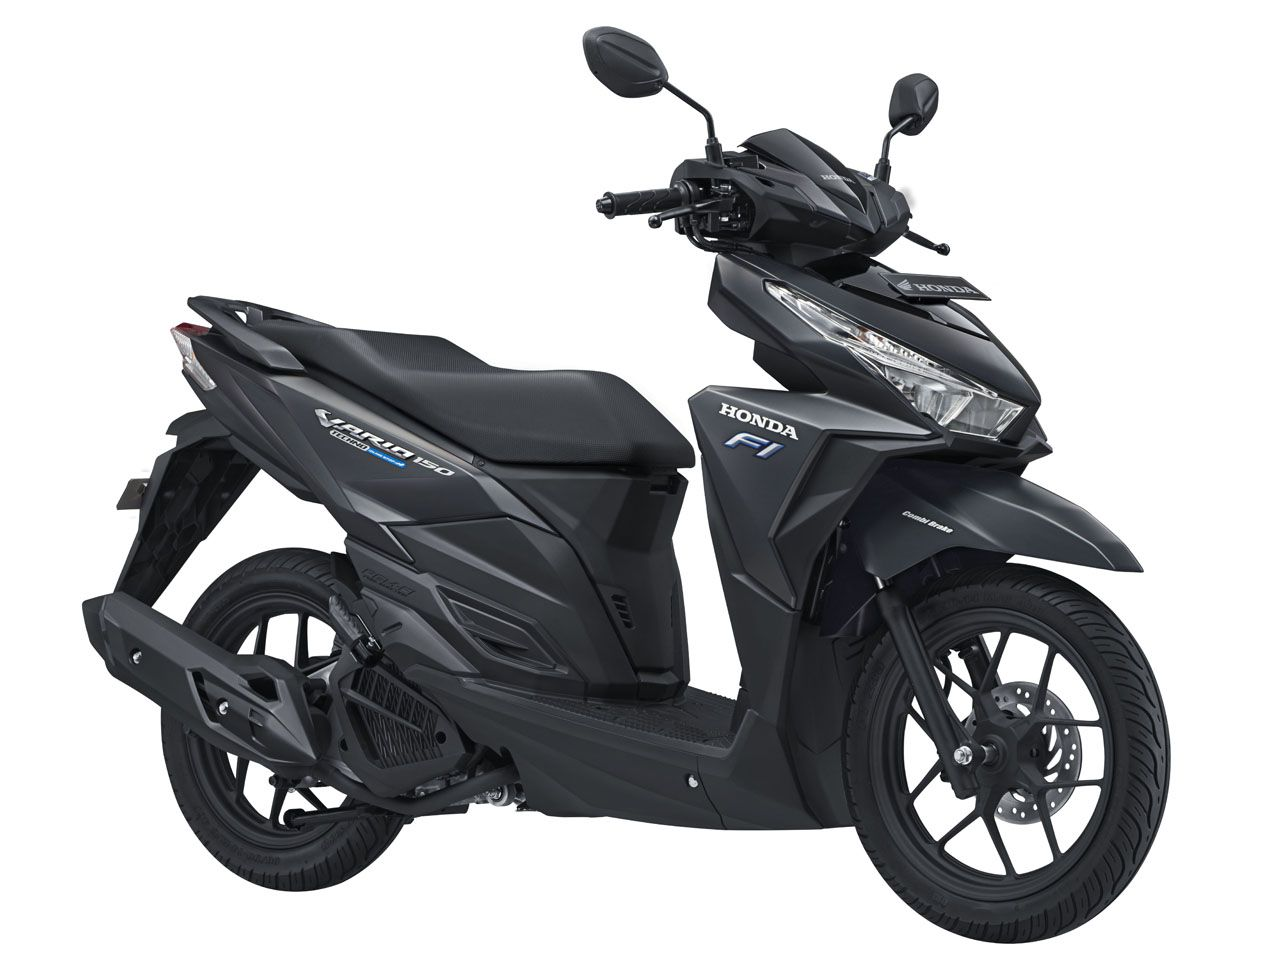 Vario 150 eSP tipe Exclusive warna Matte Black